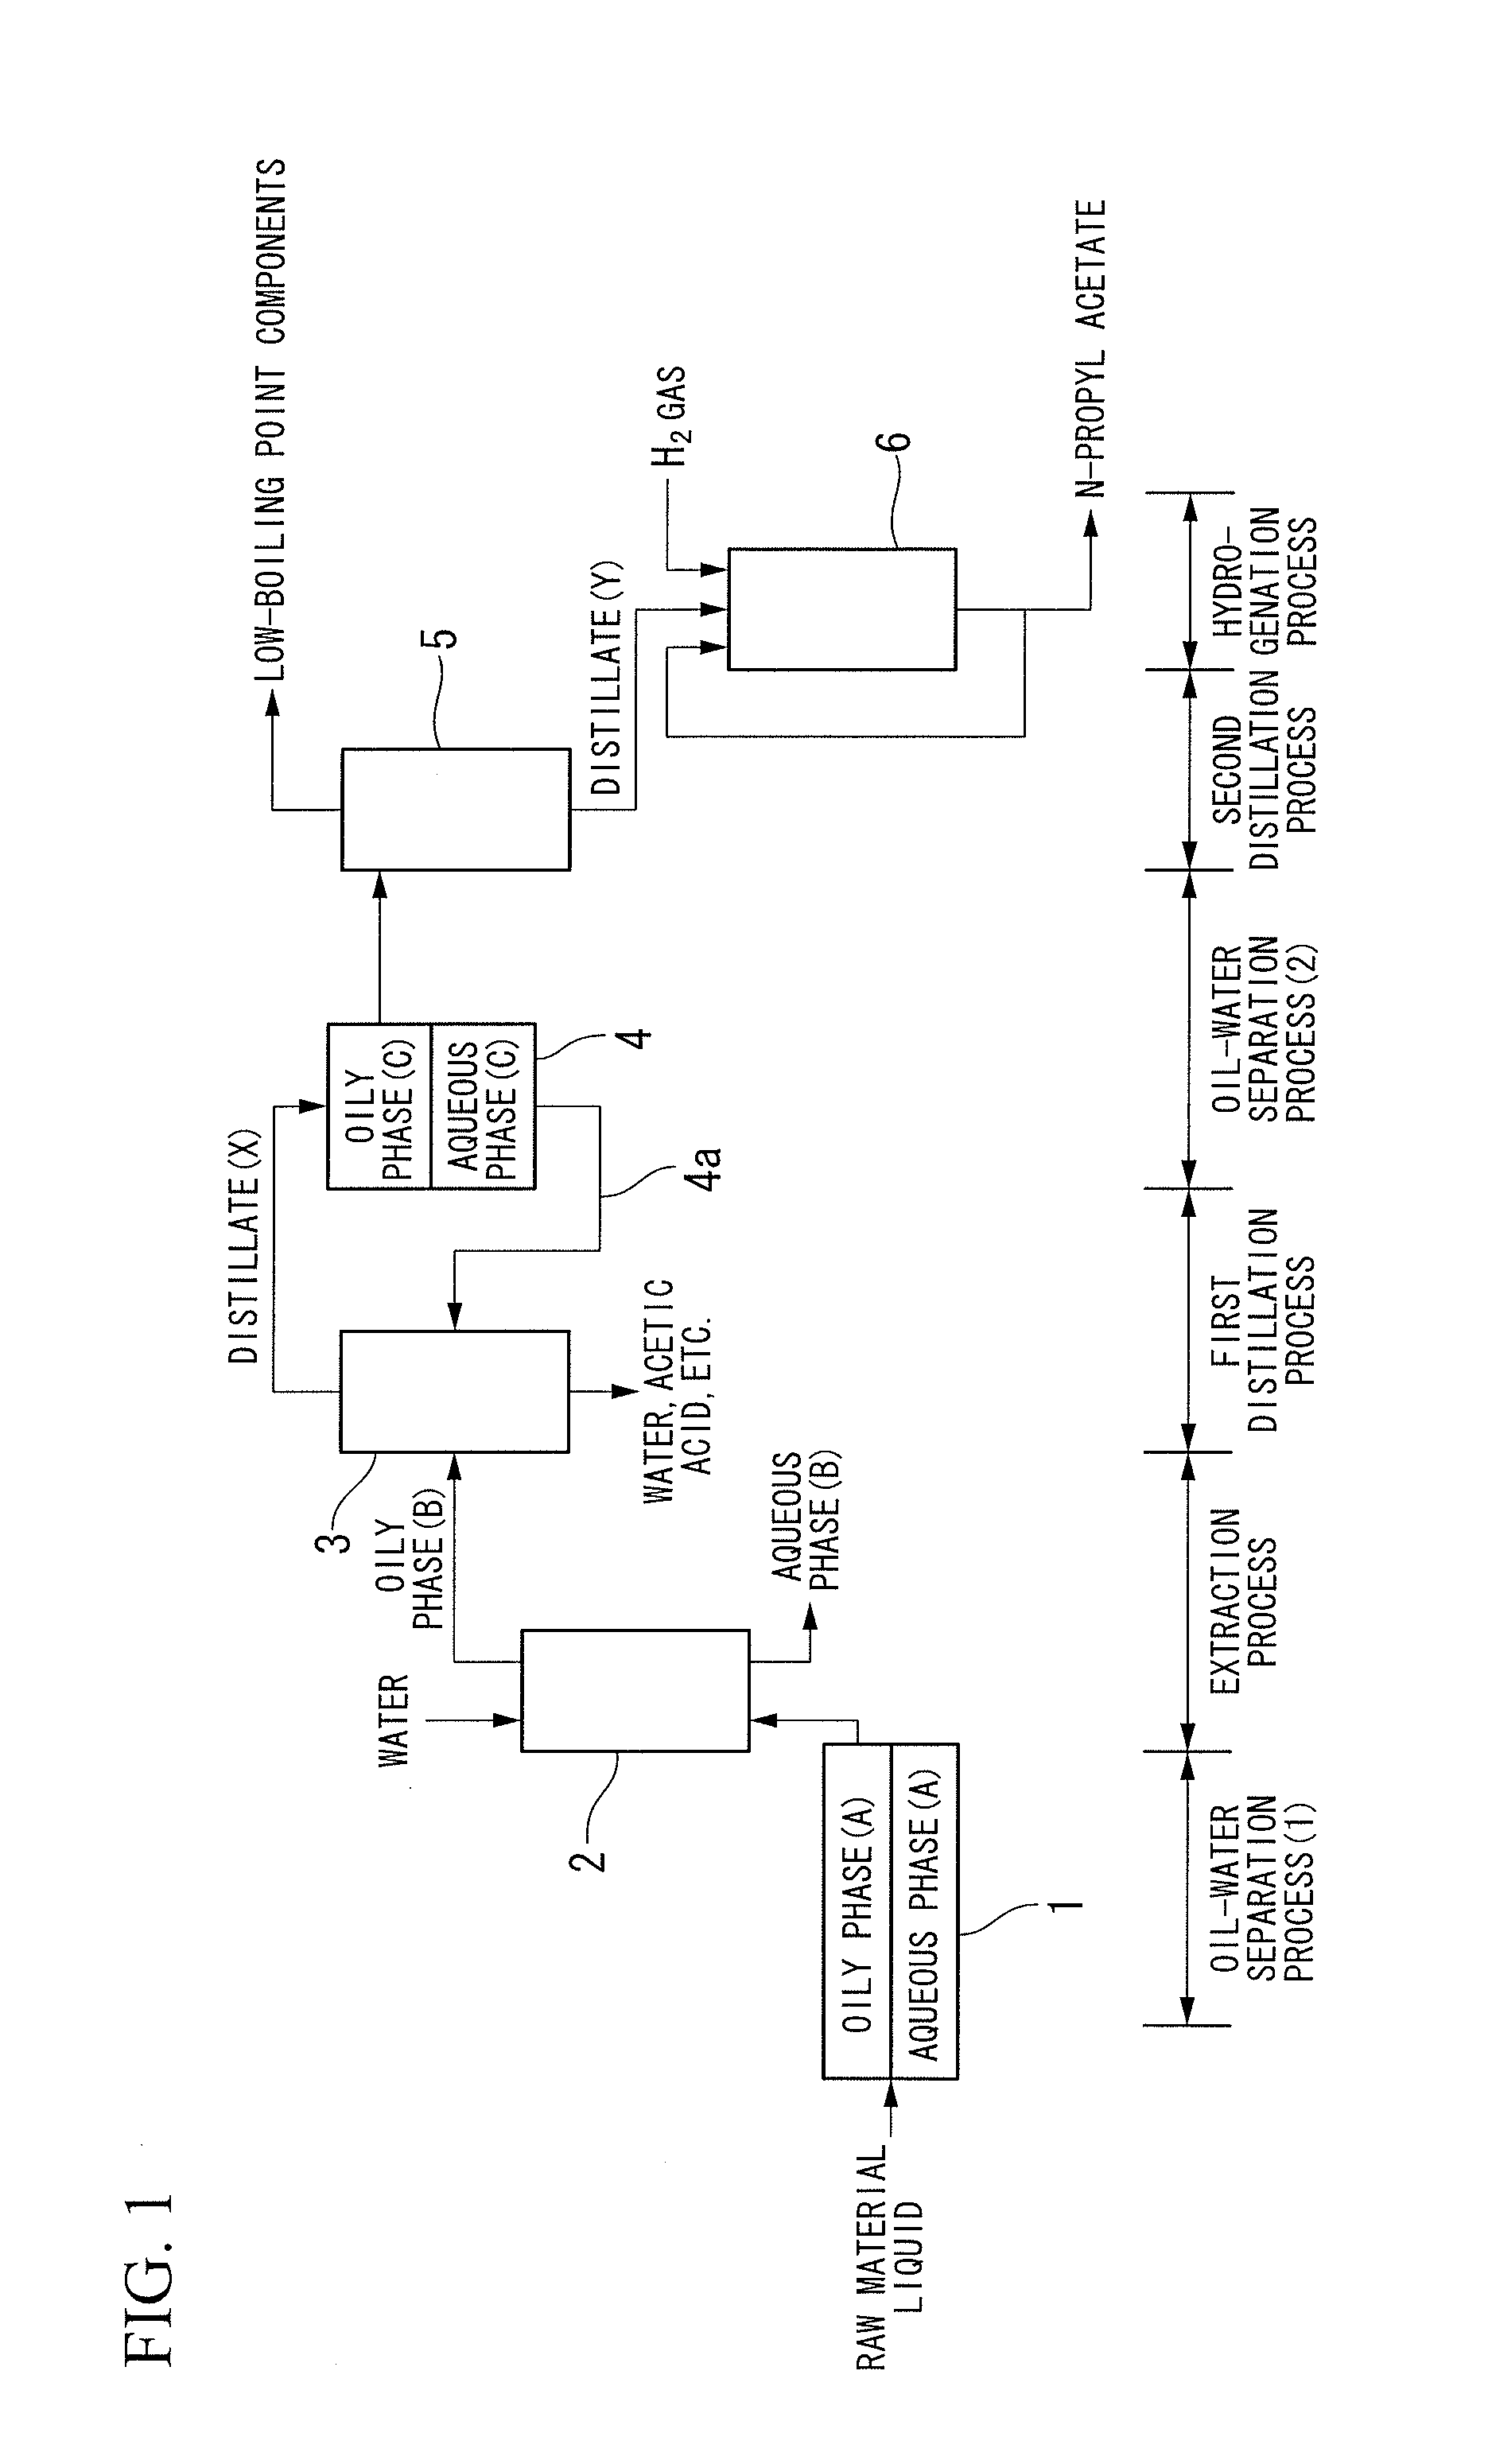 Patent US20130018203 - Method for producing n-propyl acetate and ...